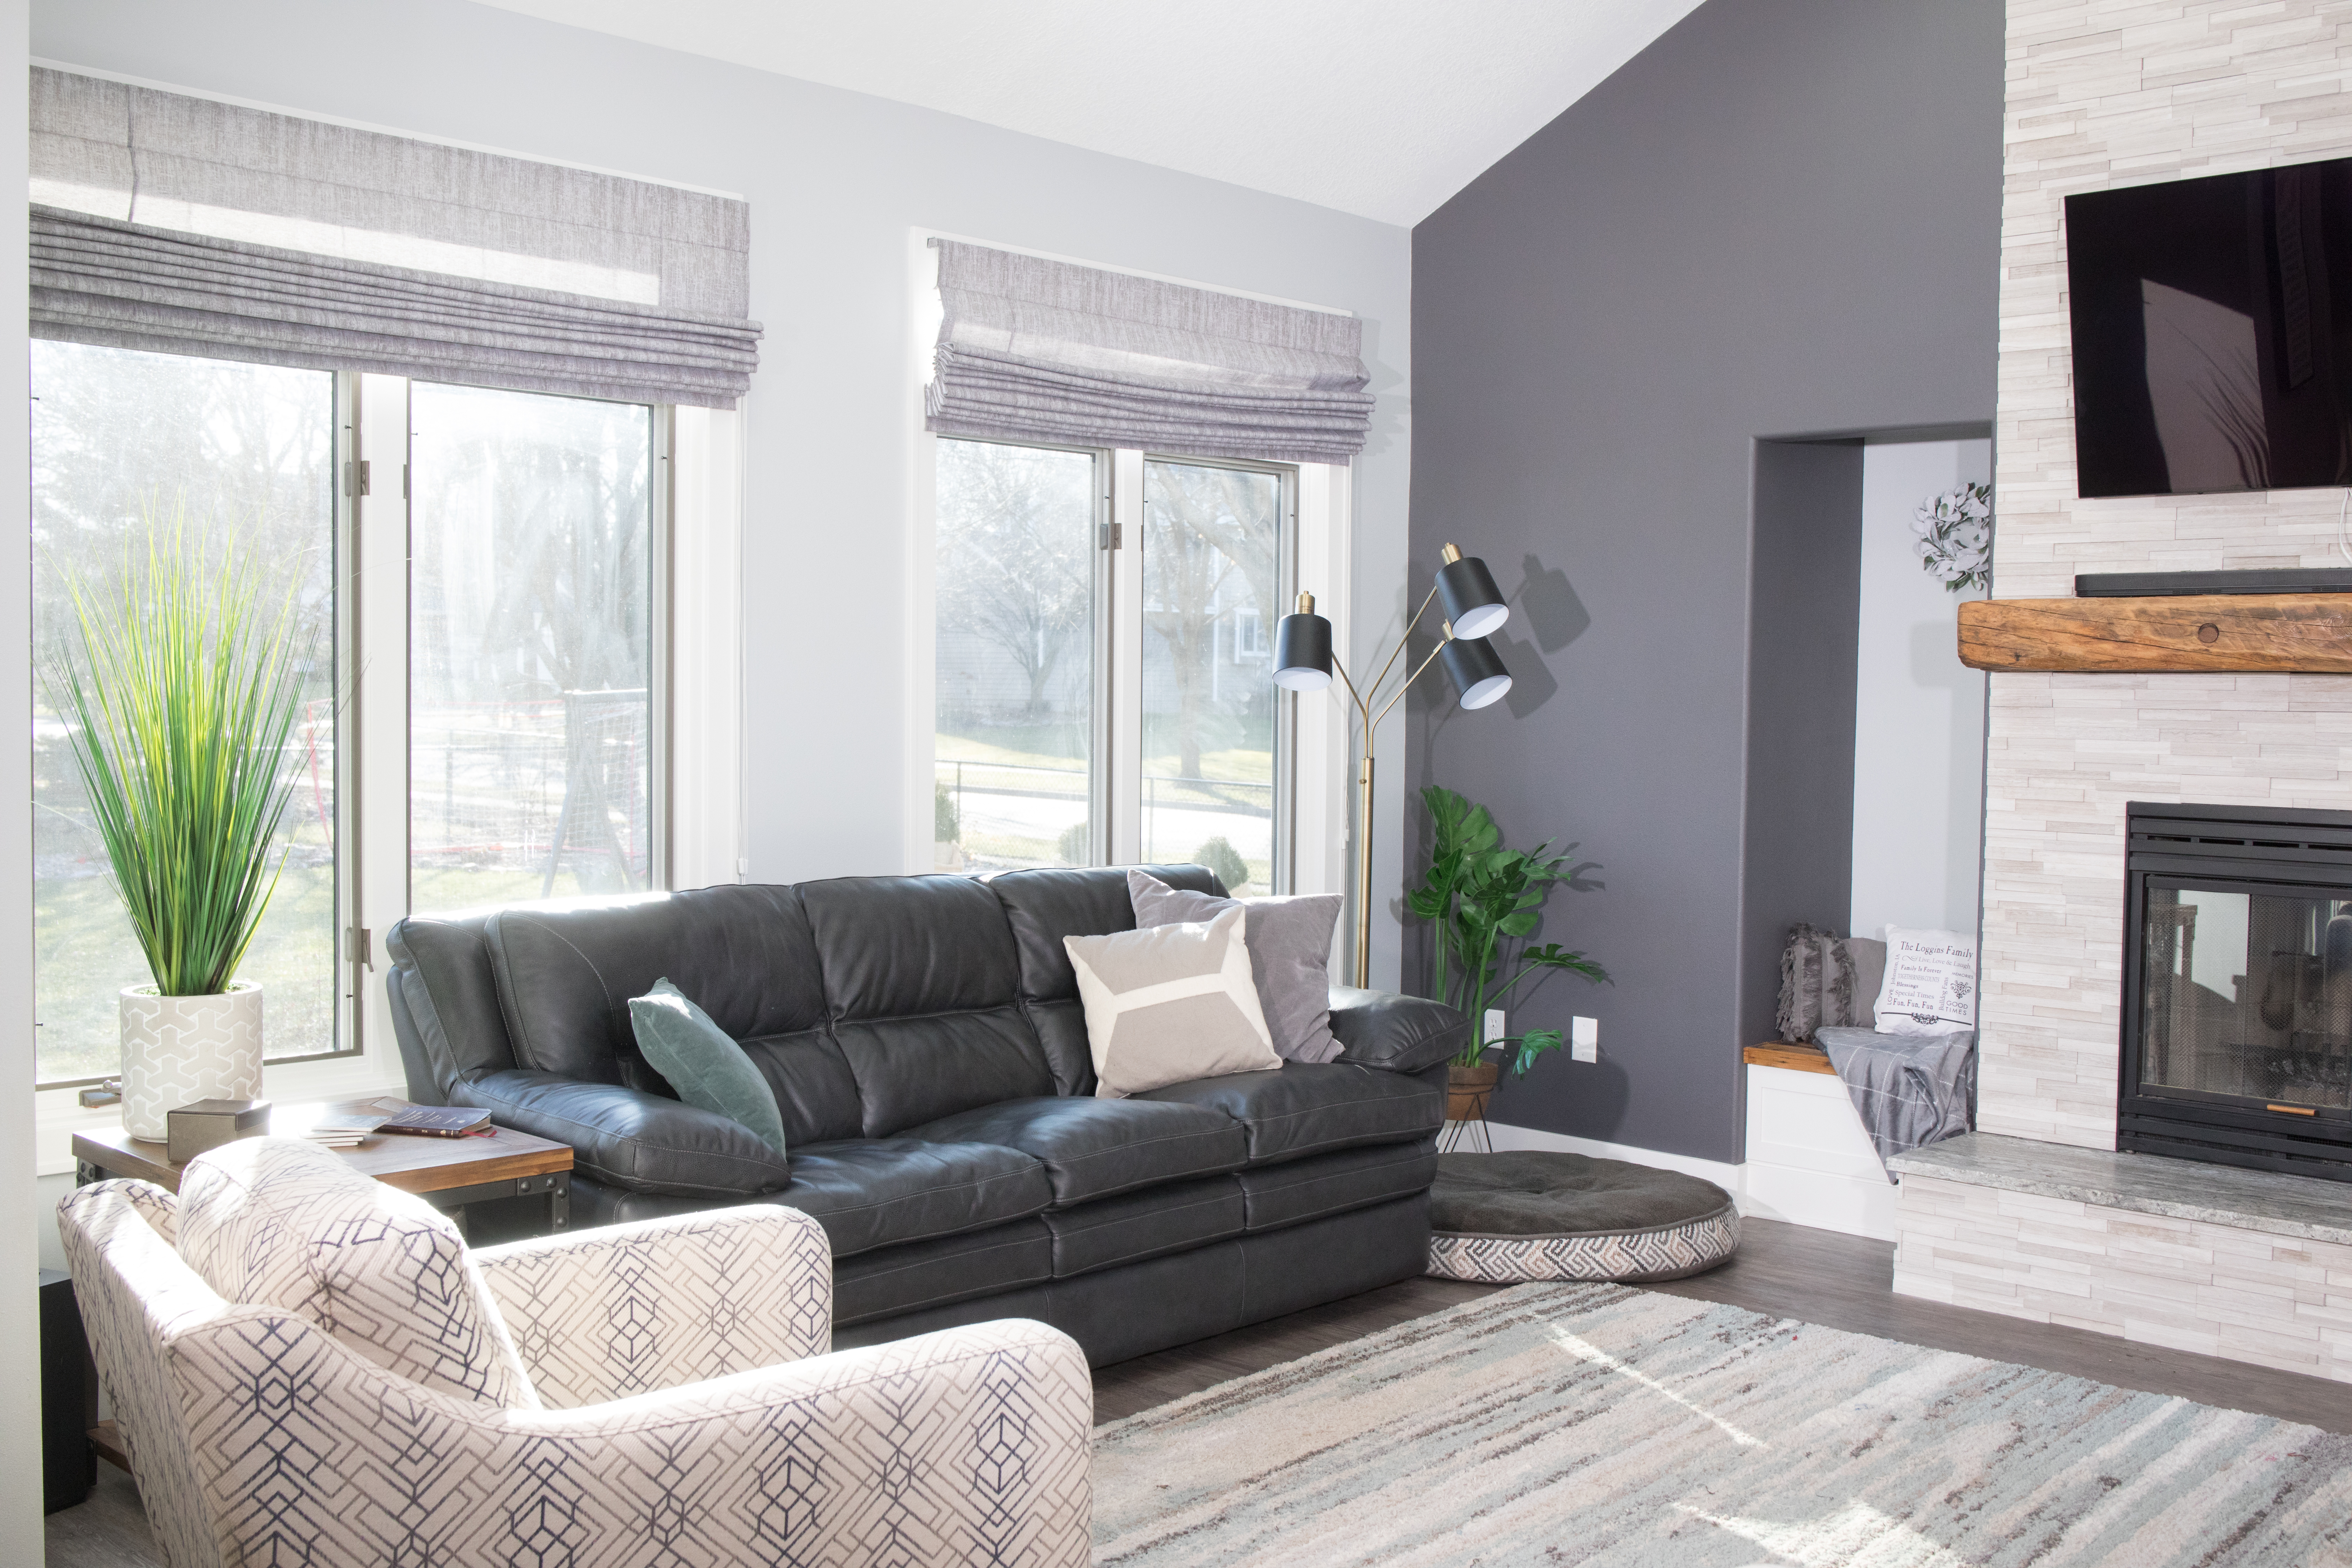 Interior remodeling in Des Moines Iowa